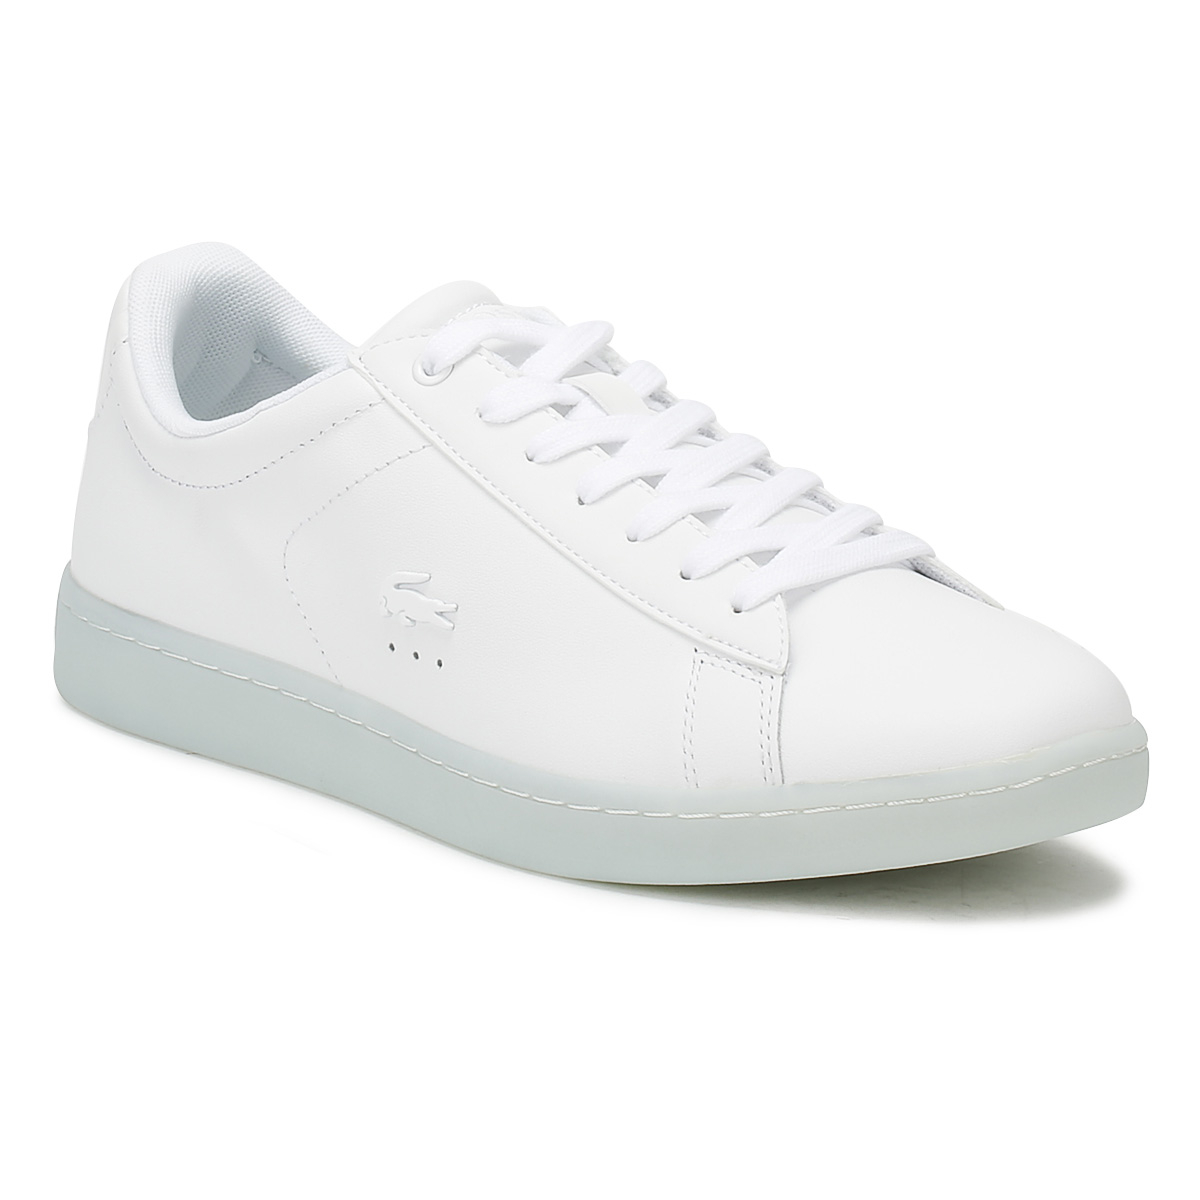 Whiteamp; Evo Womens 118 Carnaby Trainers Casual 3 Light Lacoste Blue rdoCxeWB